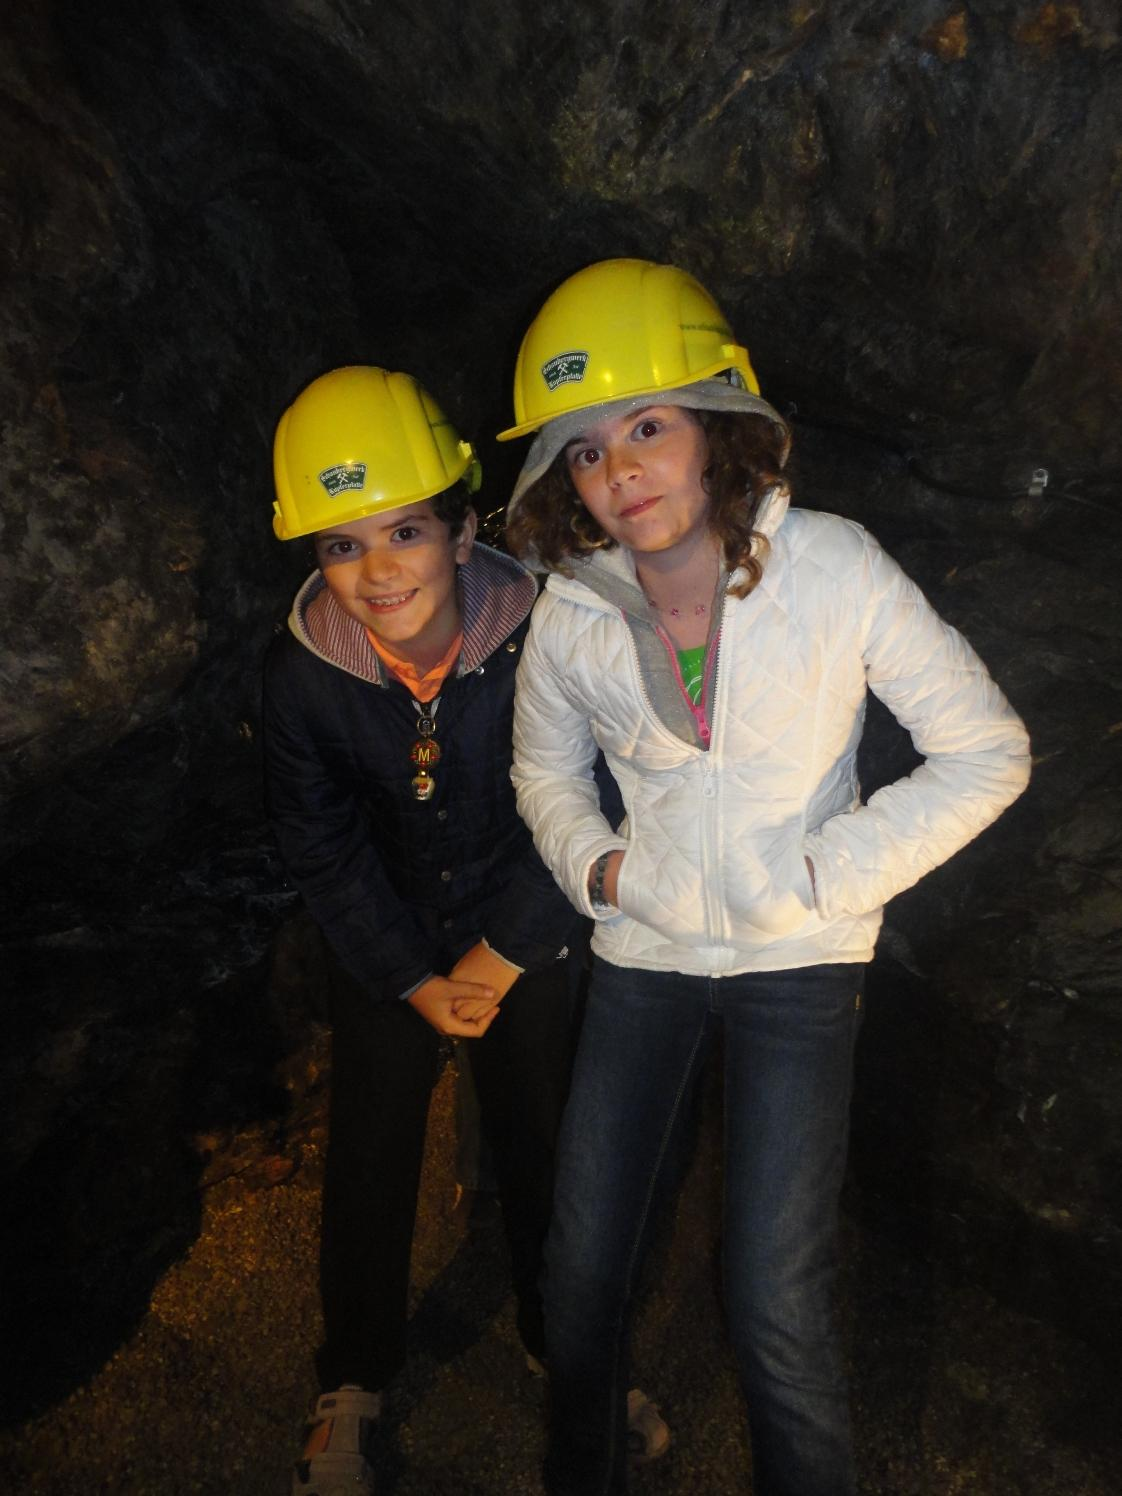 Miniera di Rame in Austria - Copper Mine